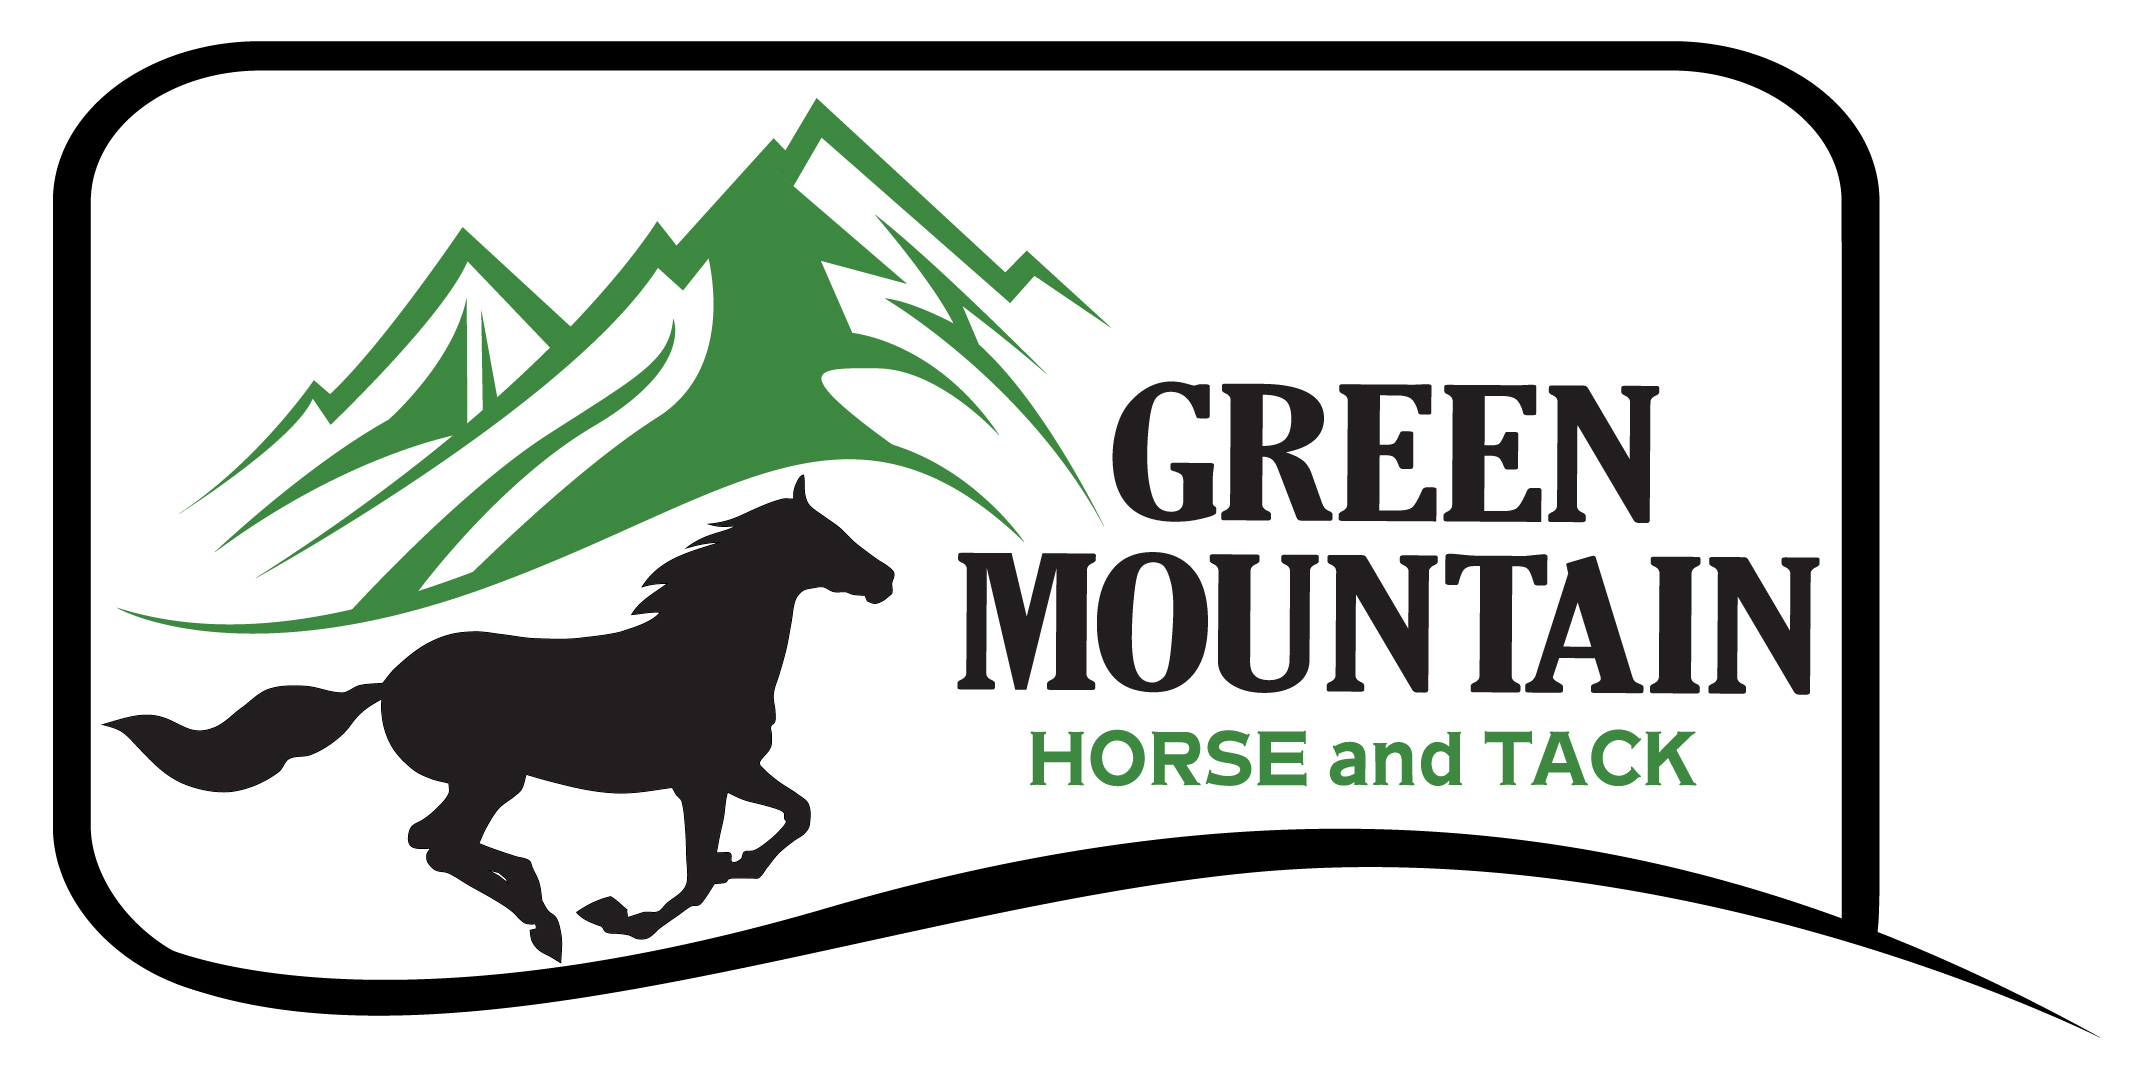 Green Mountain Horse & Tack